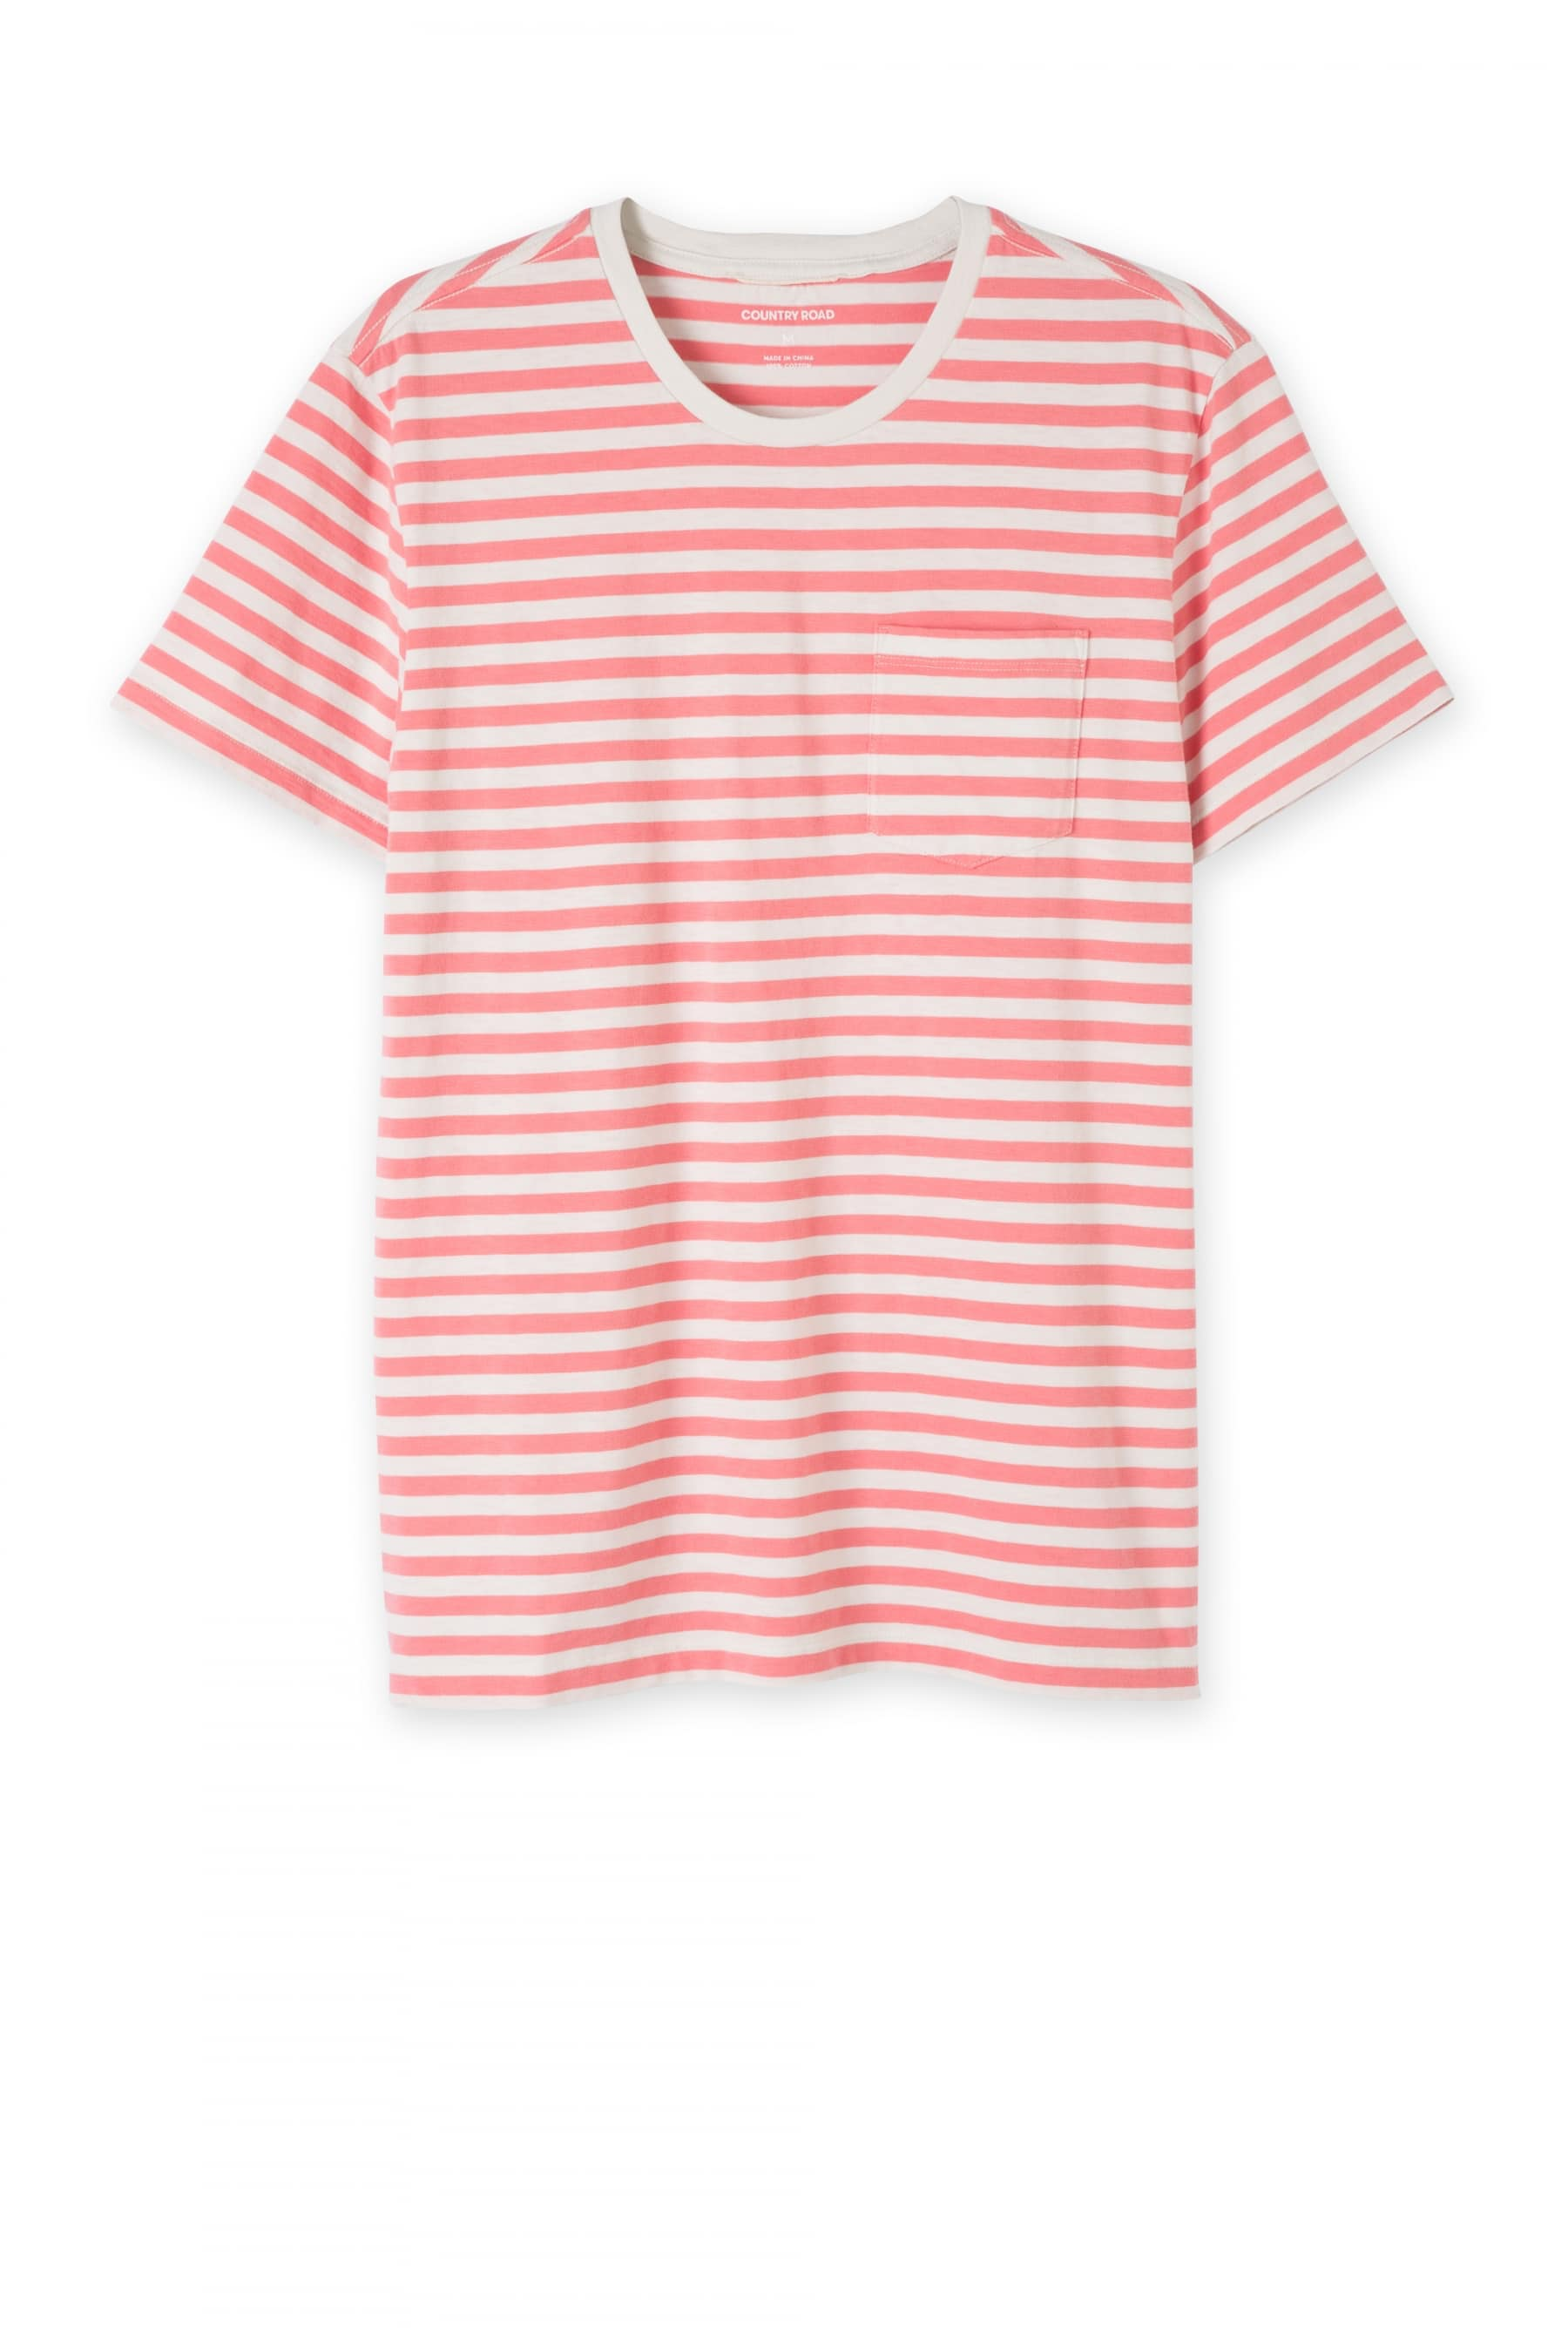 country road coral red t shirt